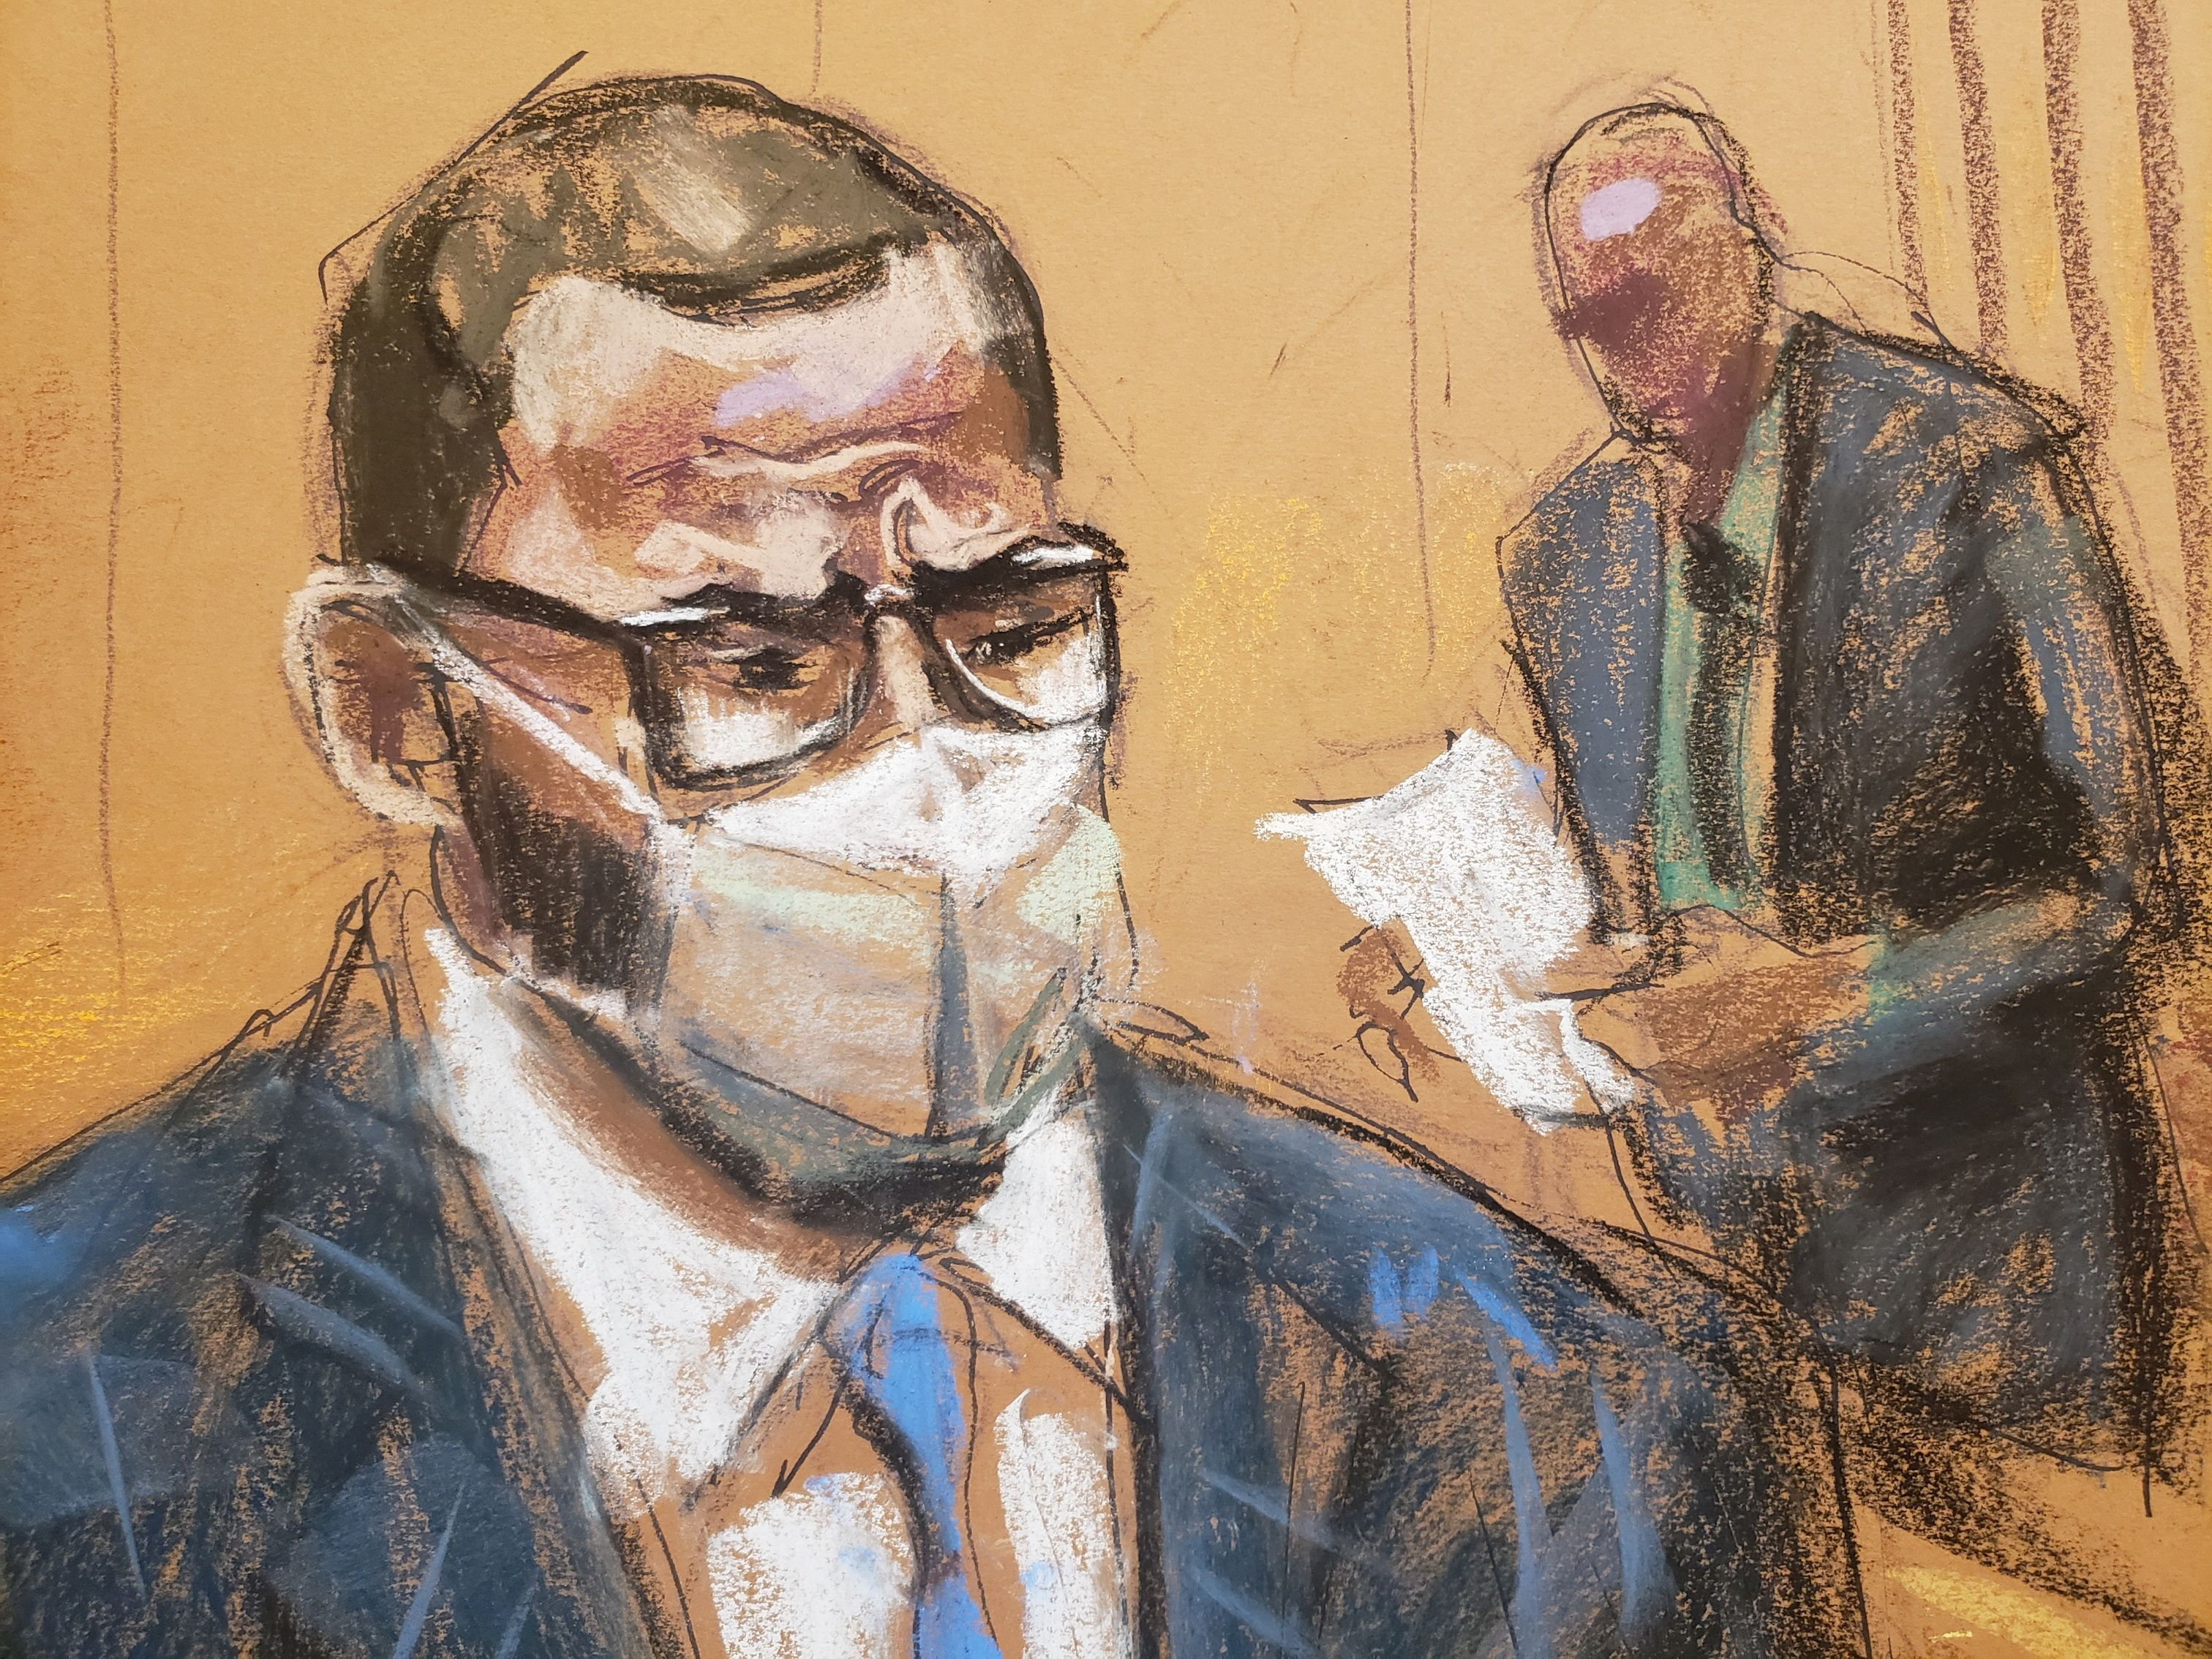 R. Kelly sits as the jury foreman reads the guilty verdict in Kelly's sex abuse trial at Brooklyn's Federal District Court in a courtroom sketch in New York, U.S., September 27, 2021. REUTERS/Jane Rosenberg